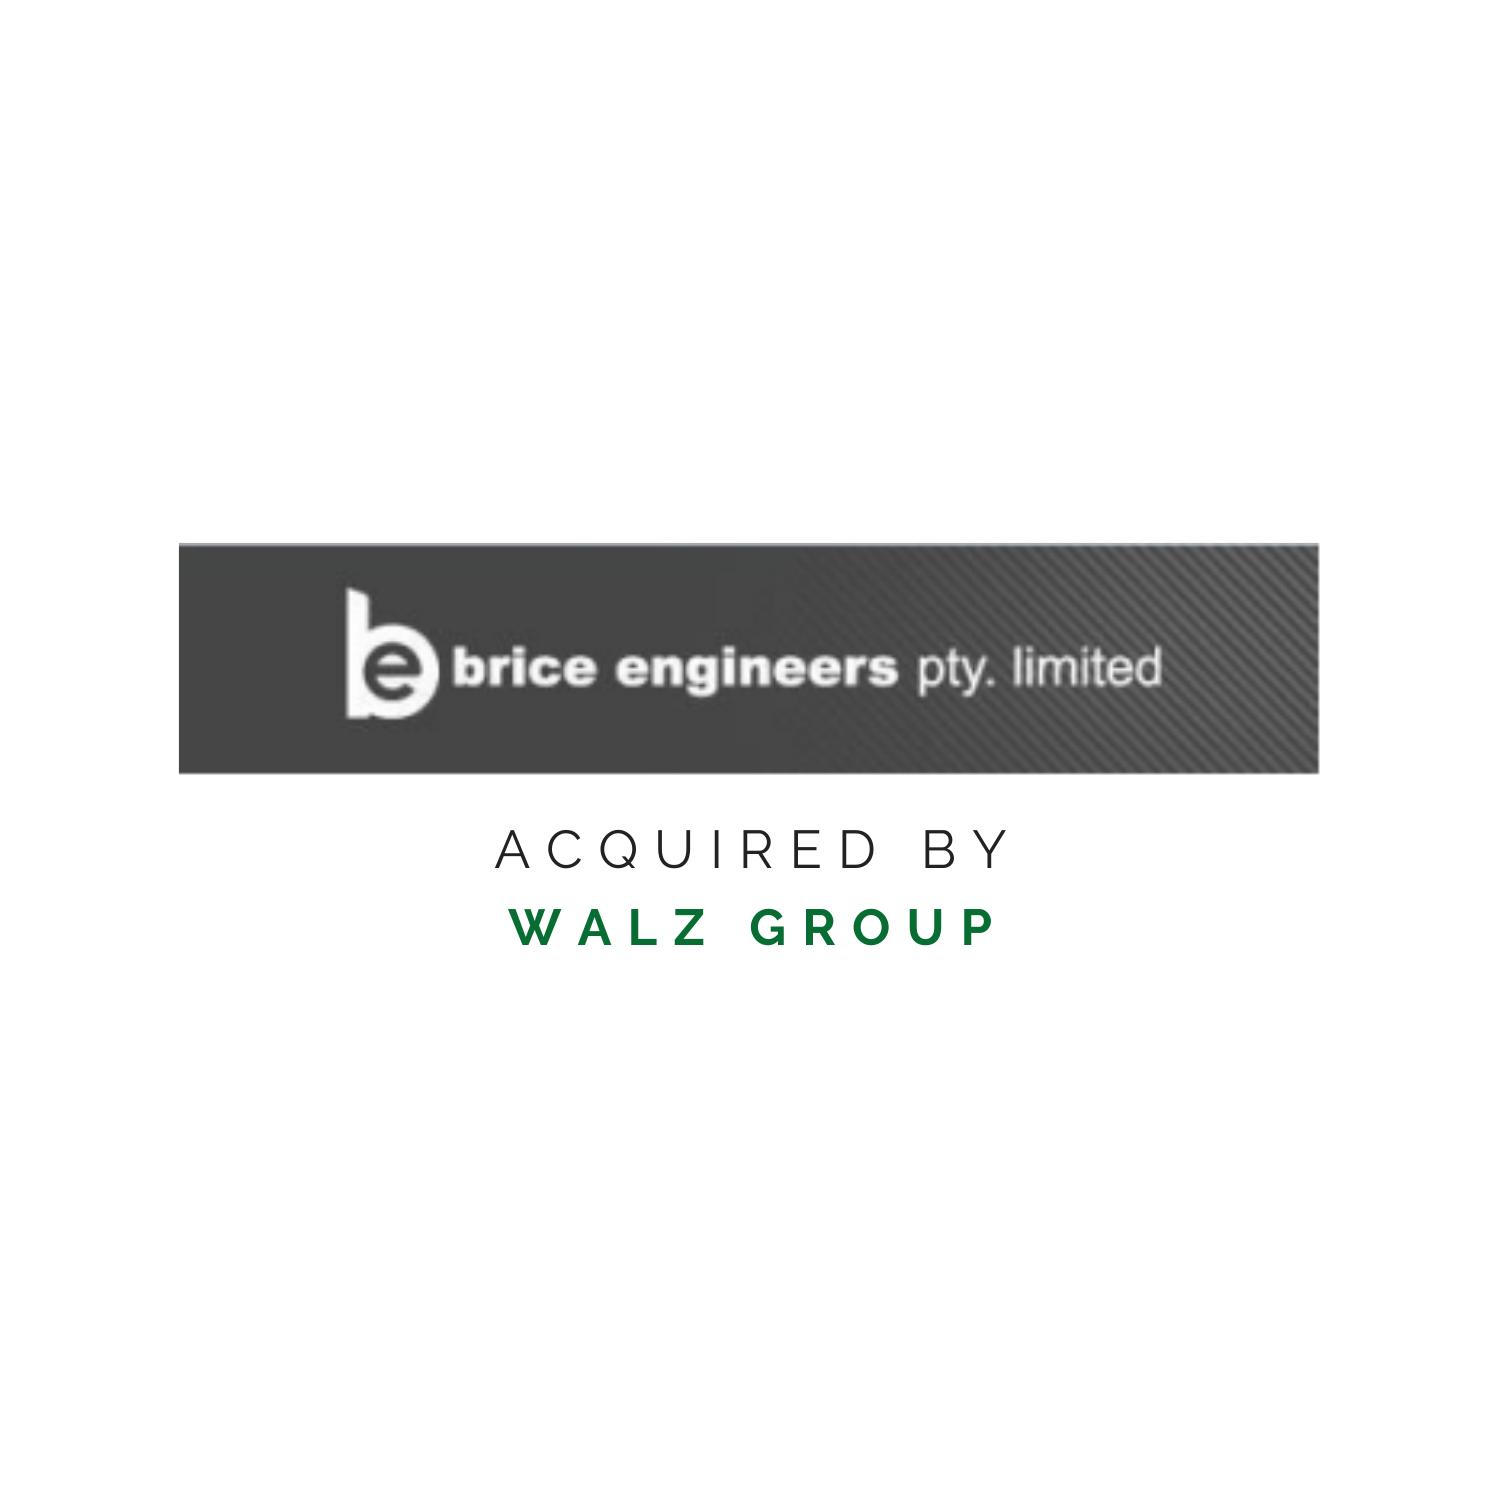 Sale of Construction and Engineering Company in Queensland, Australia